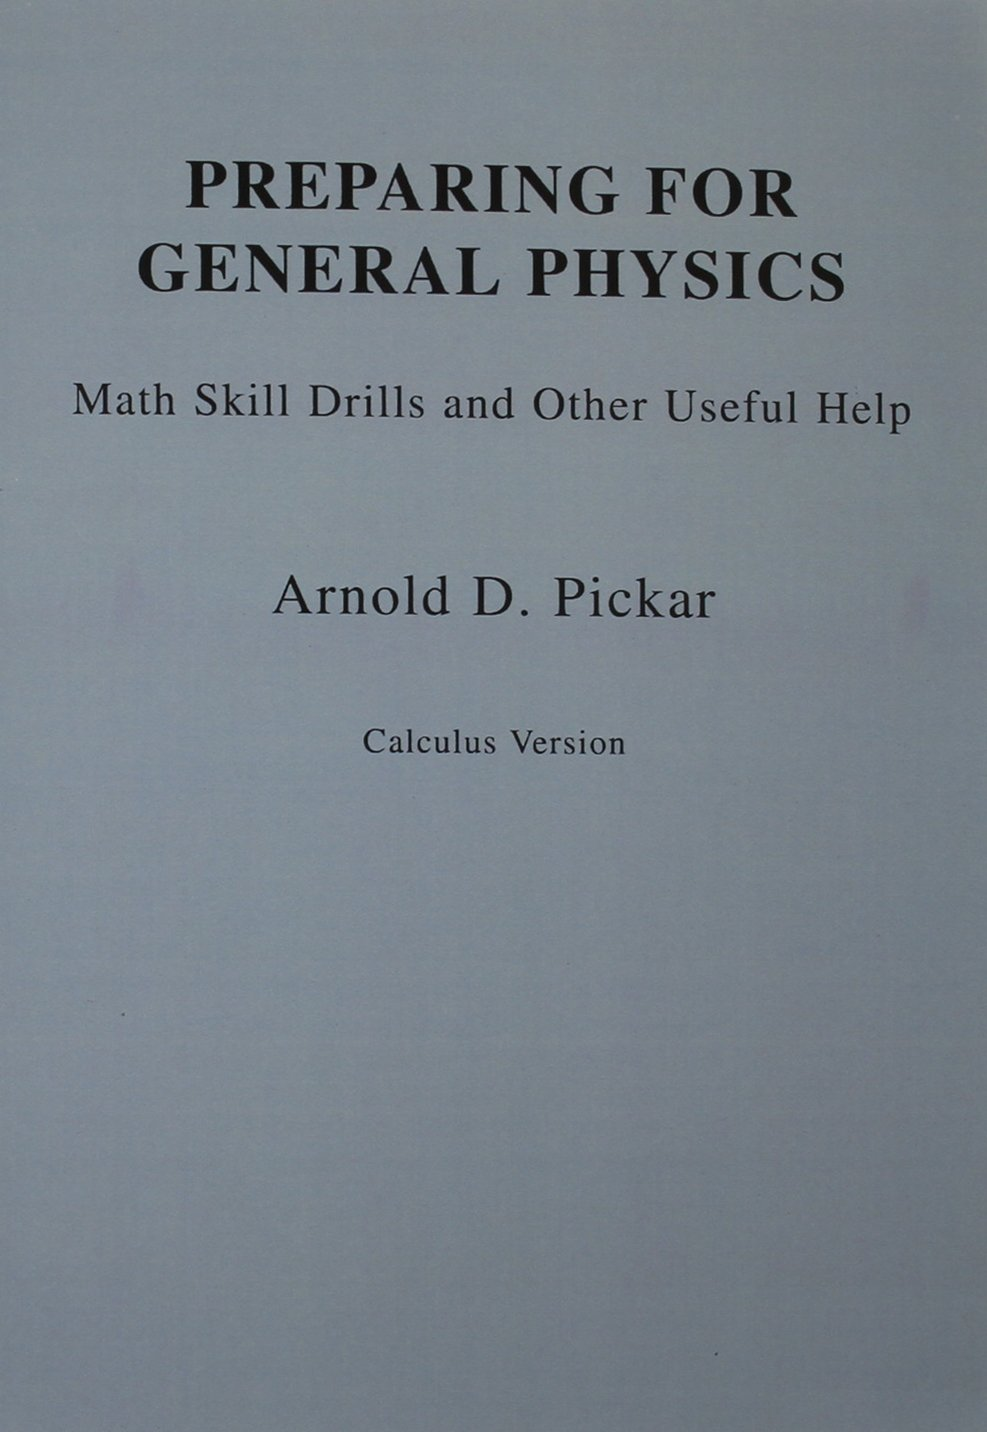 Buy Preparing for General Physics: Math Skills Drills and Other ...